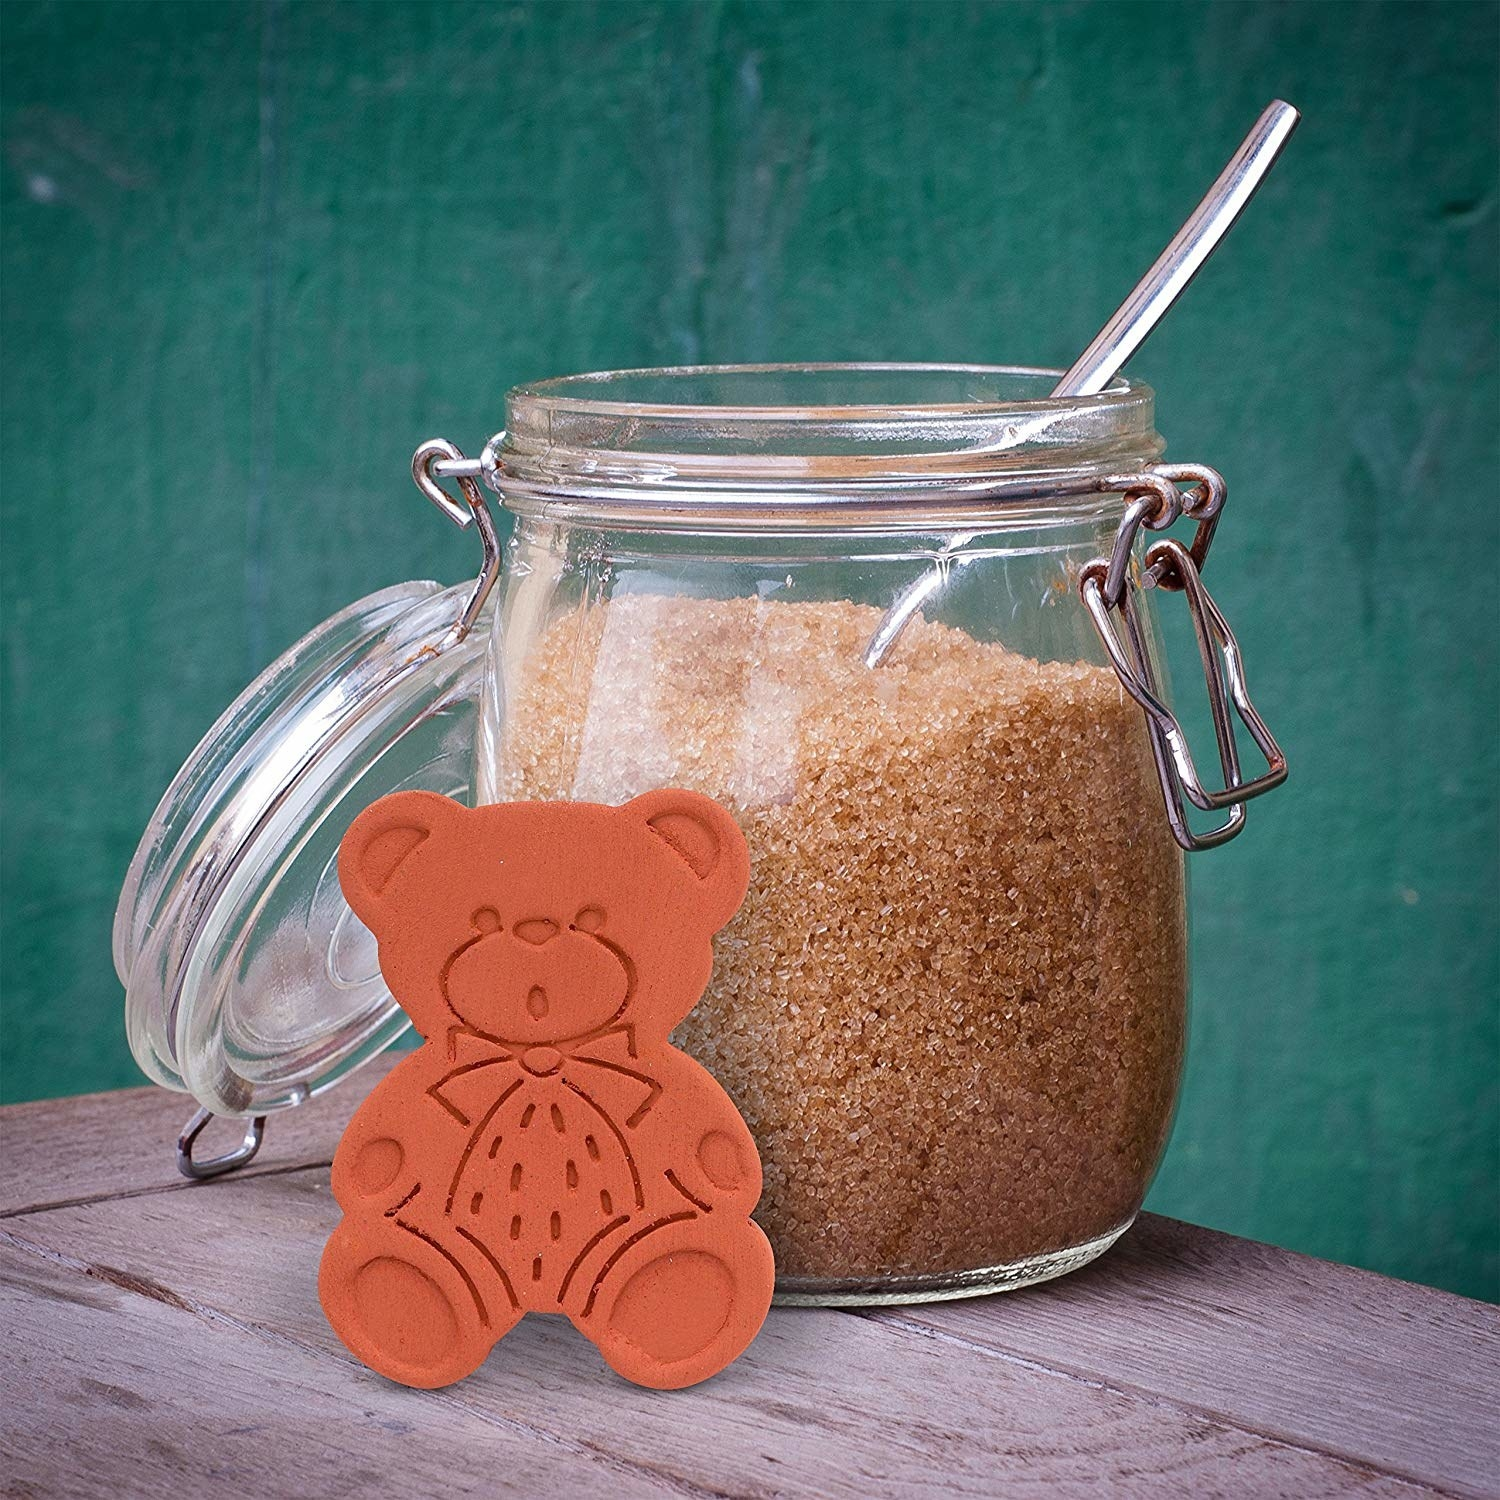 The bear next to a jar of brown sugar